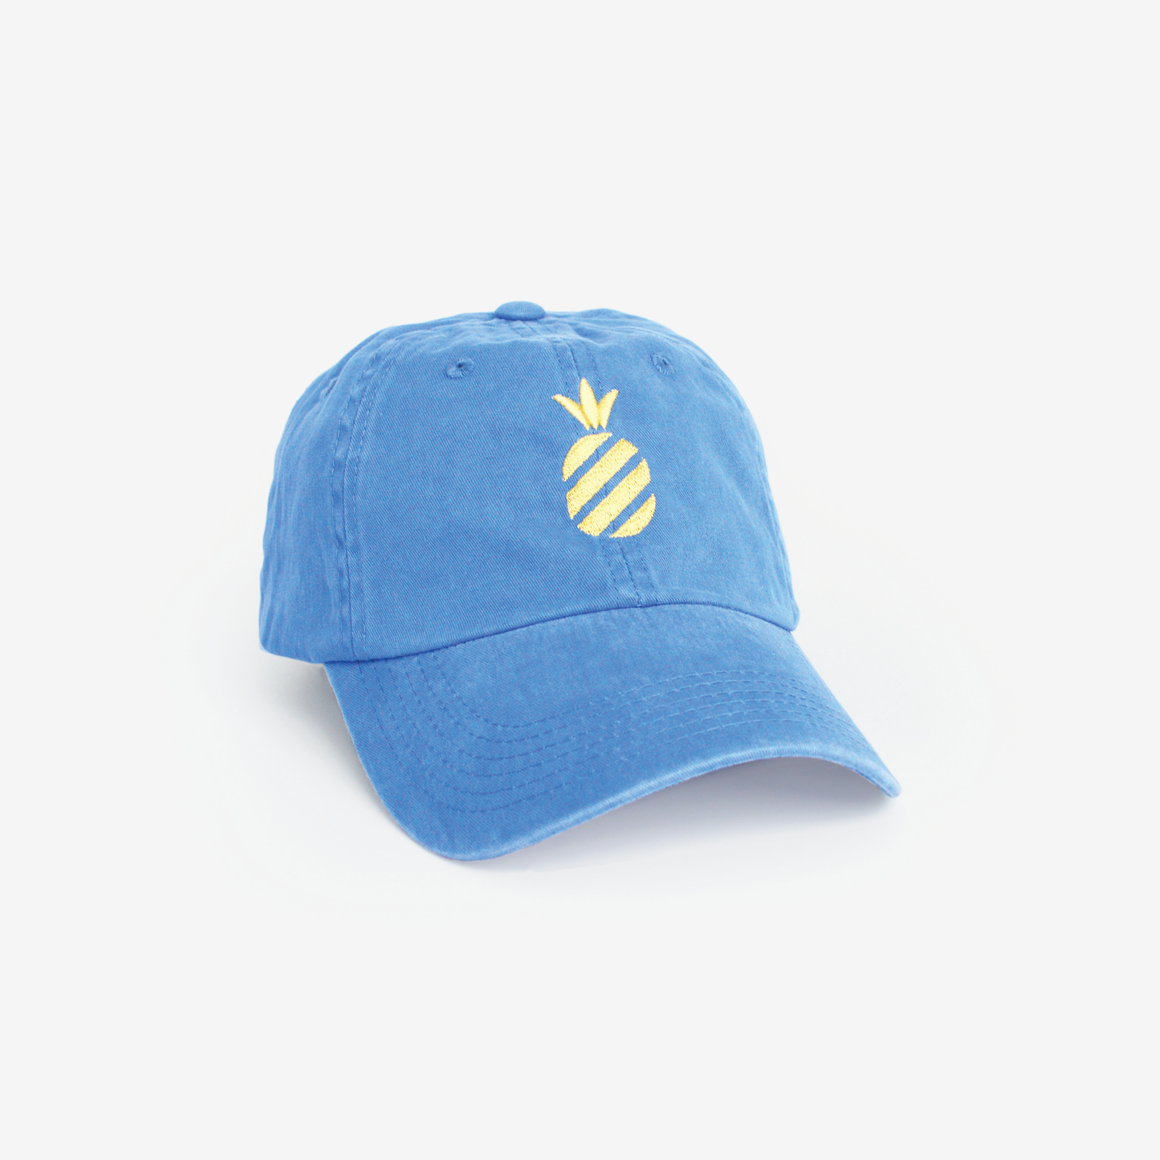 featured: Pineapple Hat - Blue